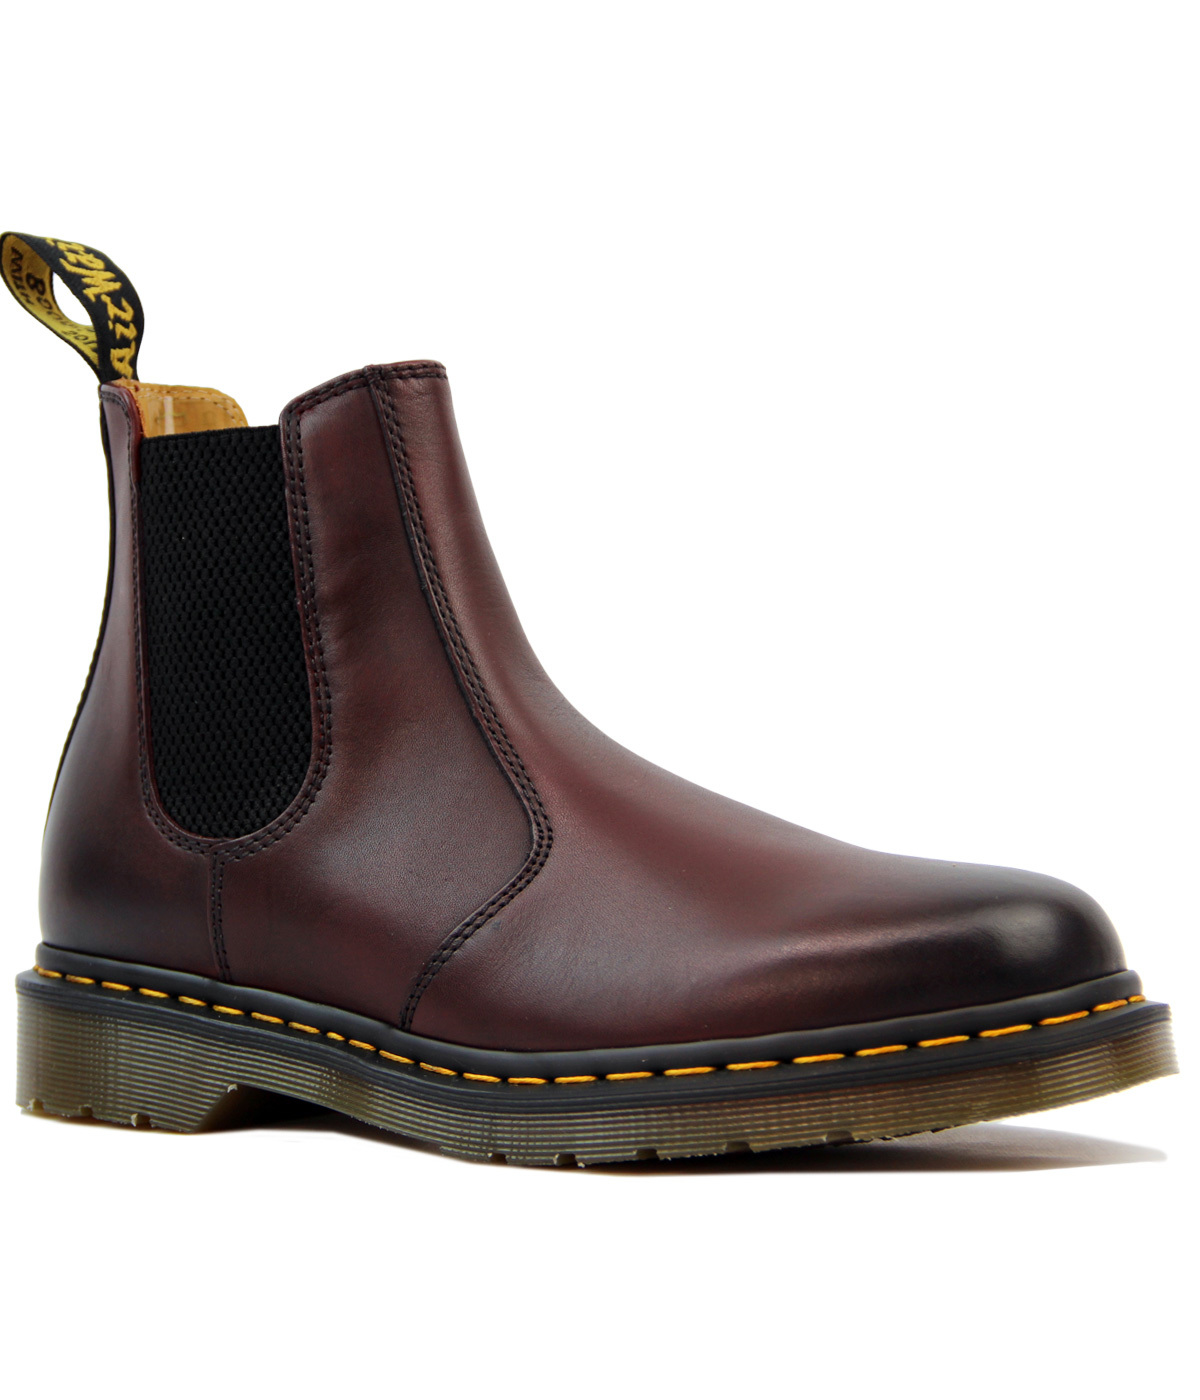 Dr Martens 2976 Cherry Red Yellow